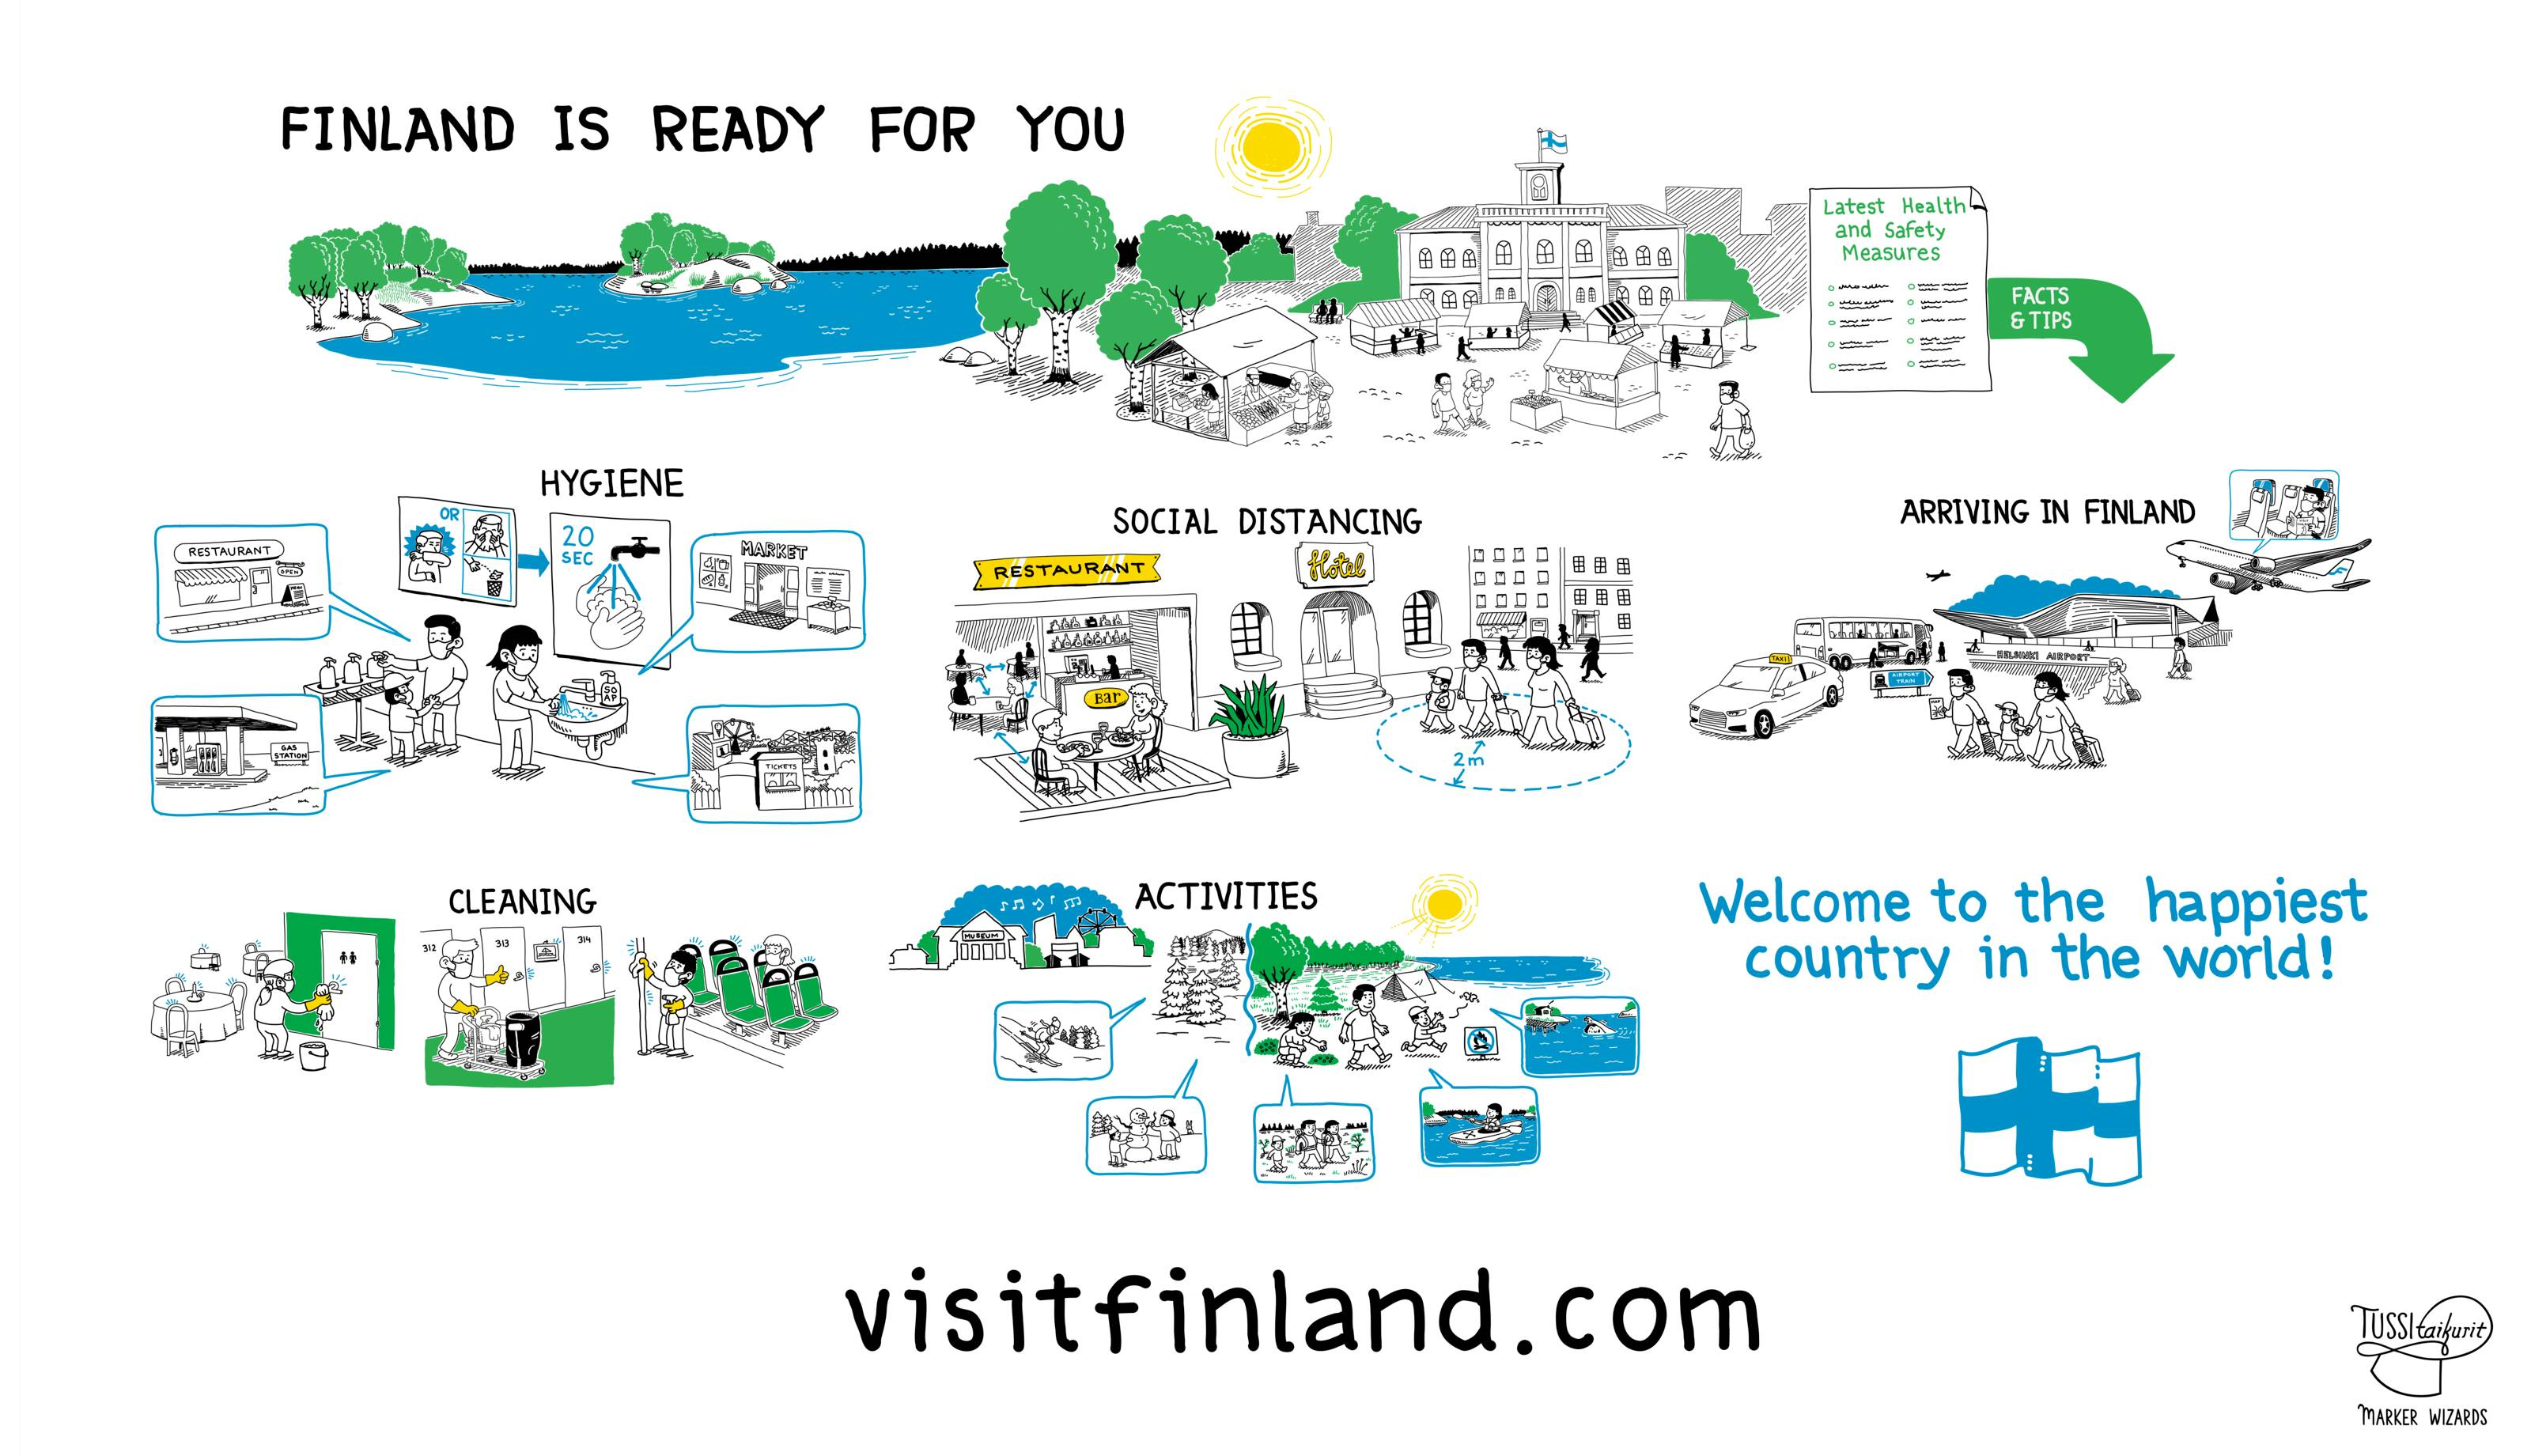 Finland is ready for you